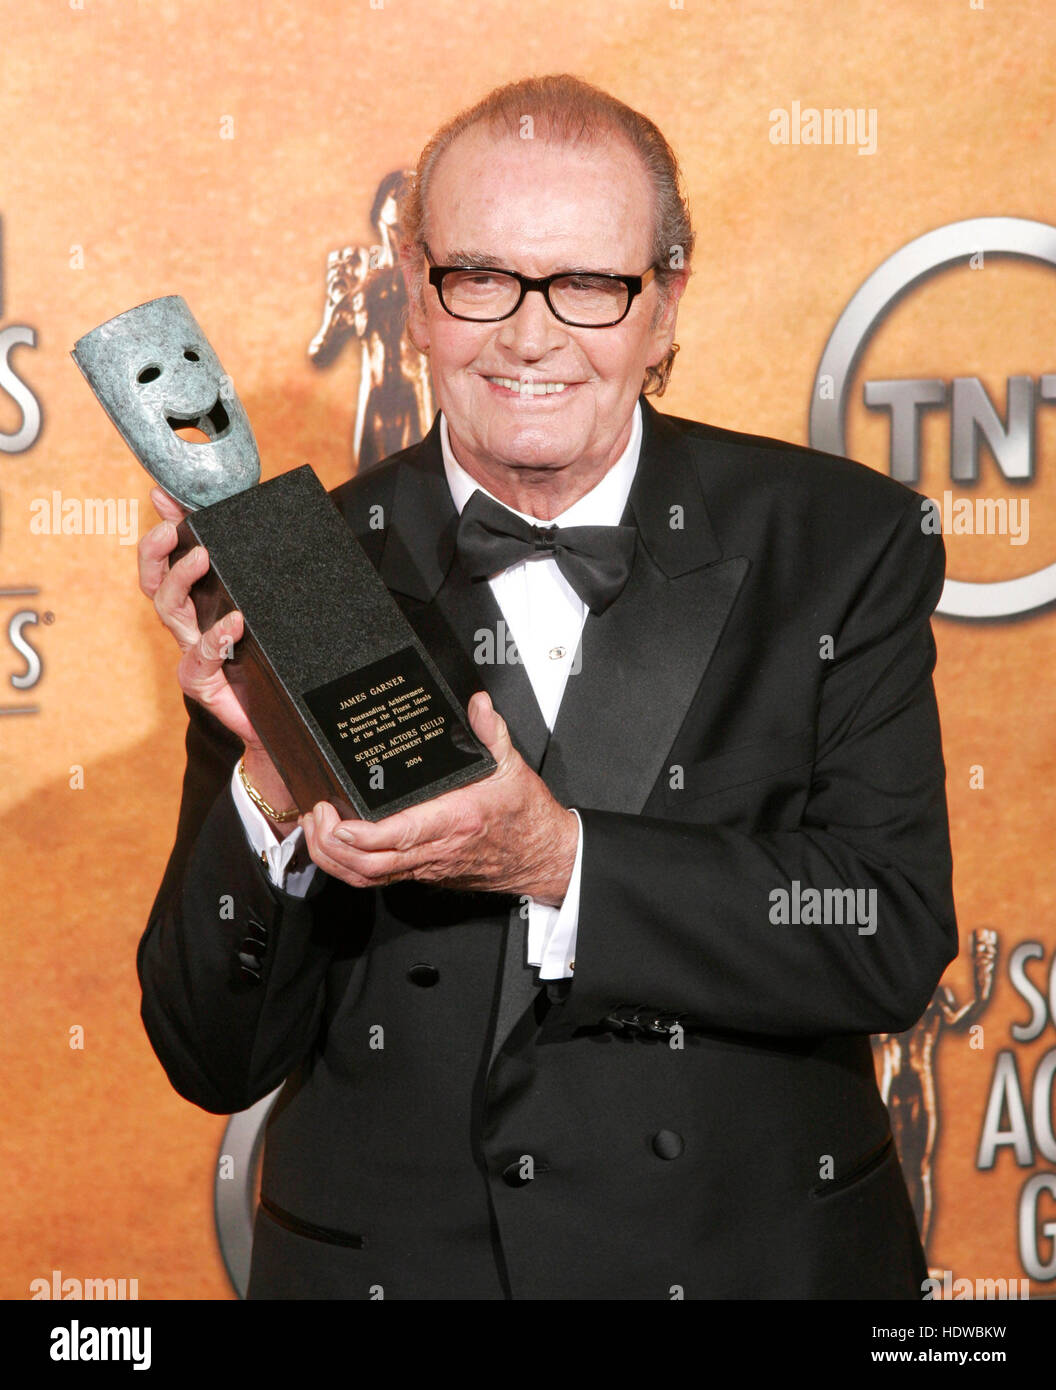 James Garner holds the 41st annual life achievement award backstage during the 11th annual Screen Actors Guild awards - Stock Image